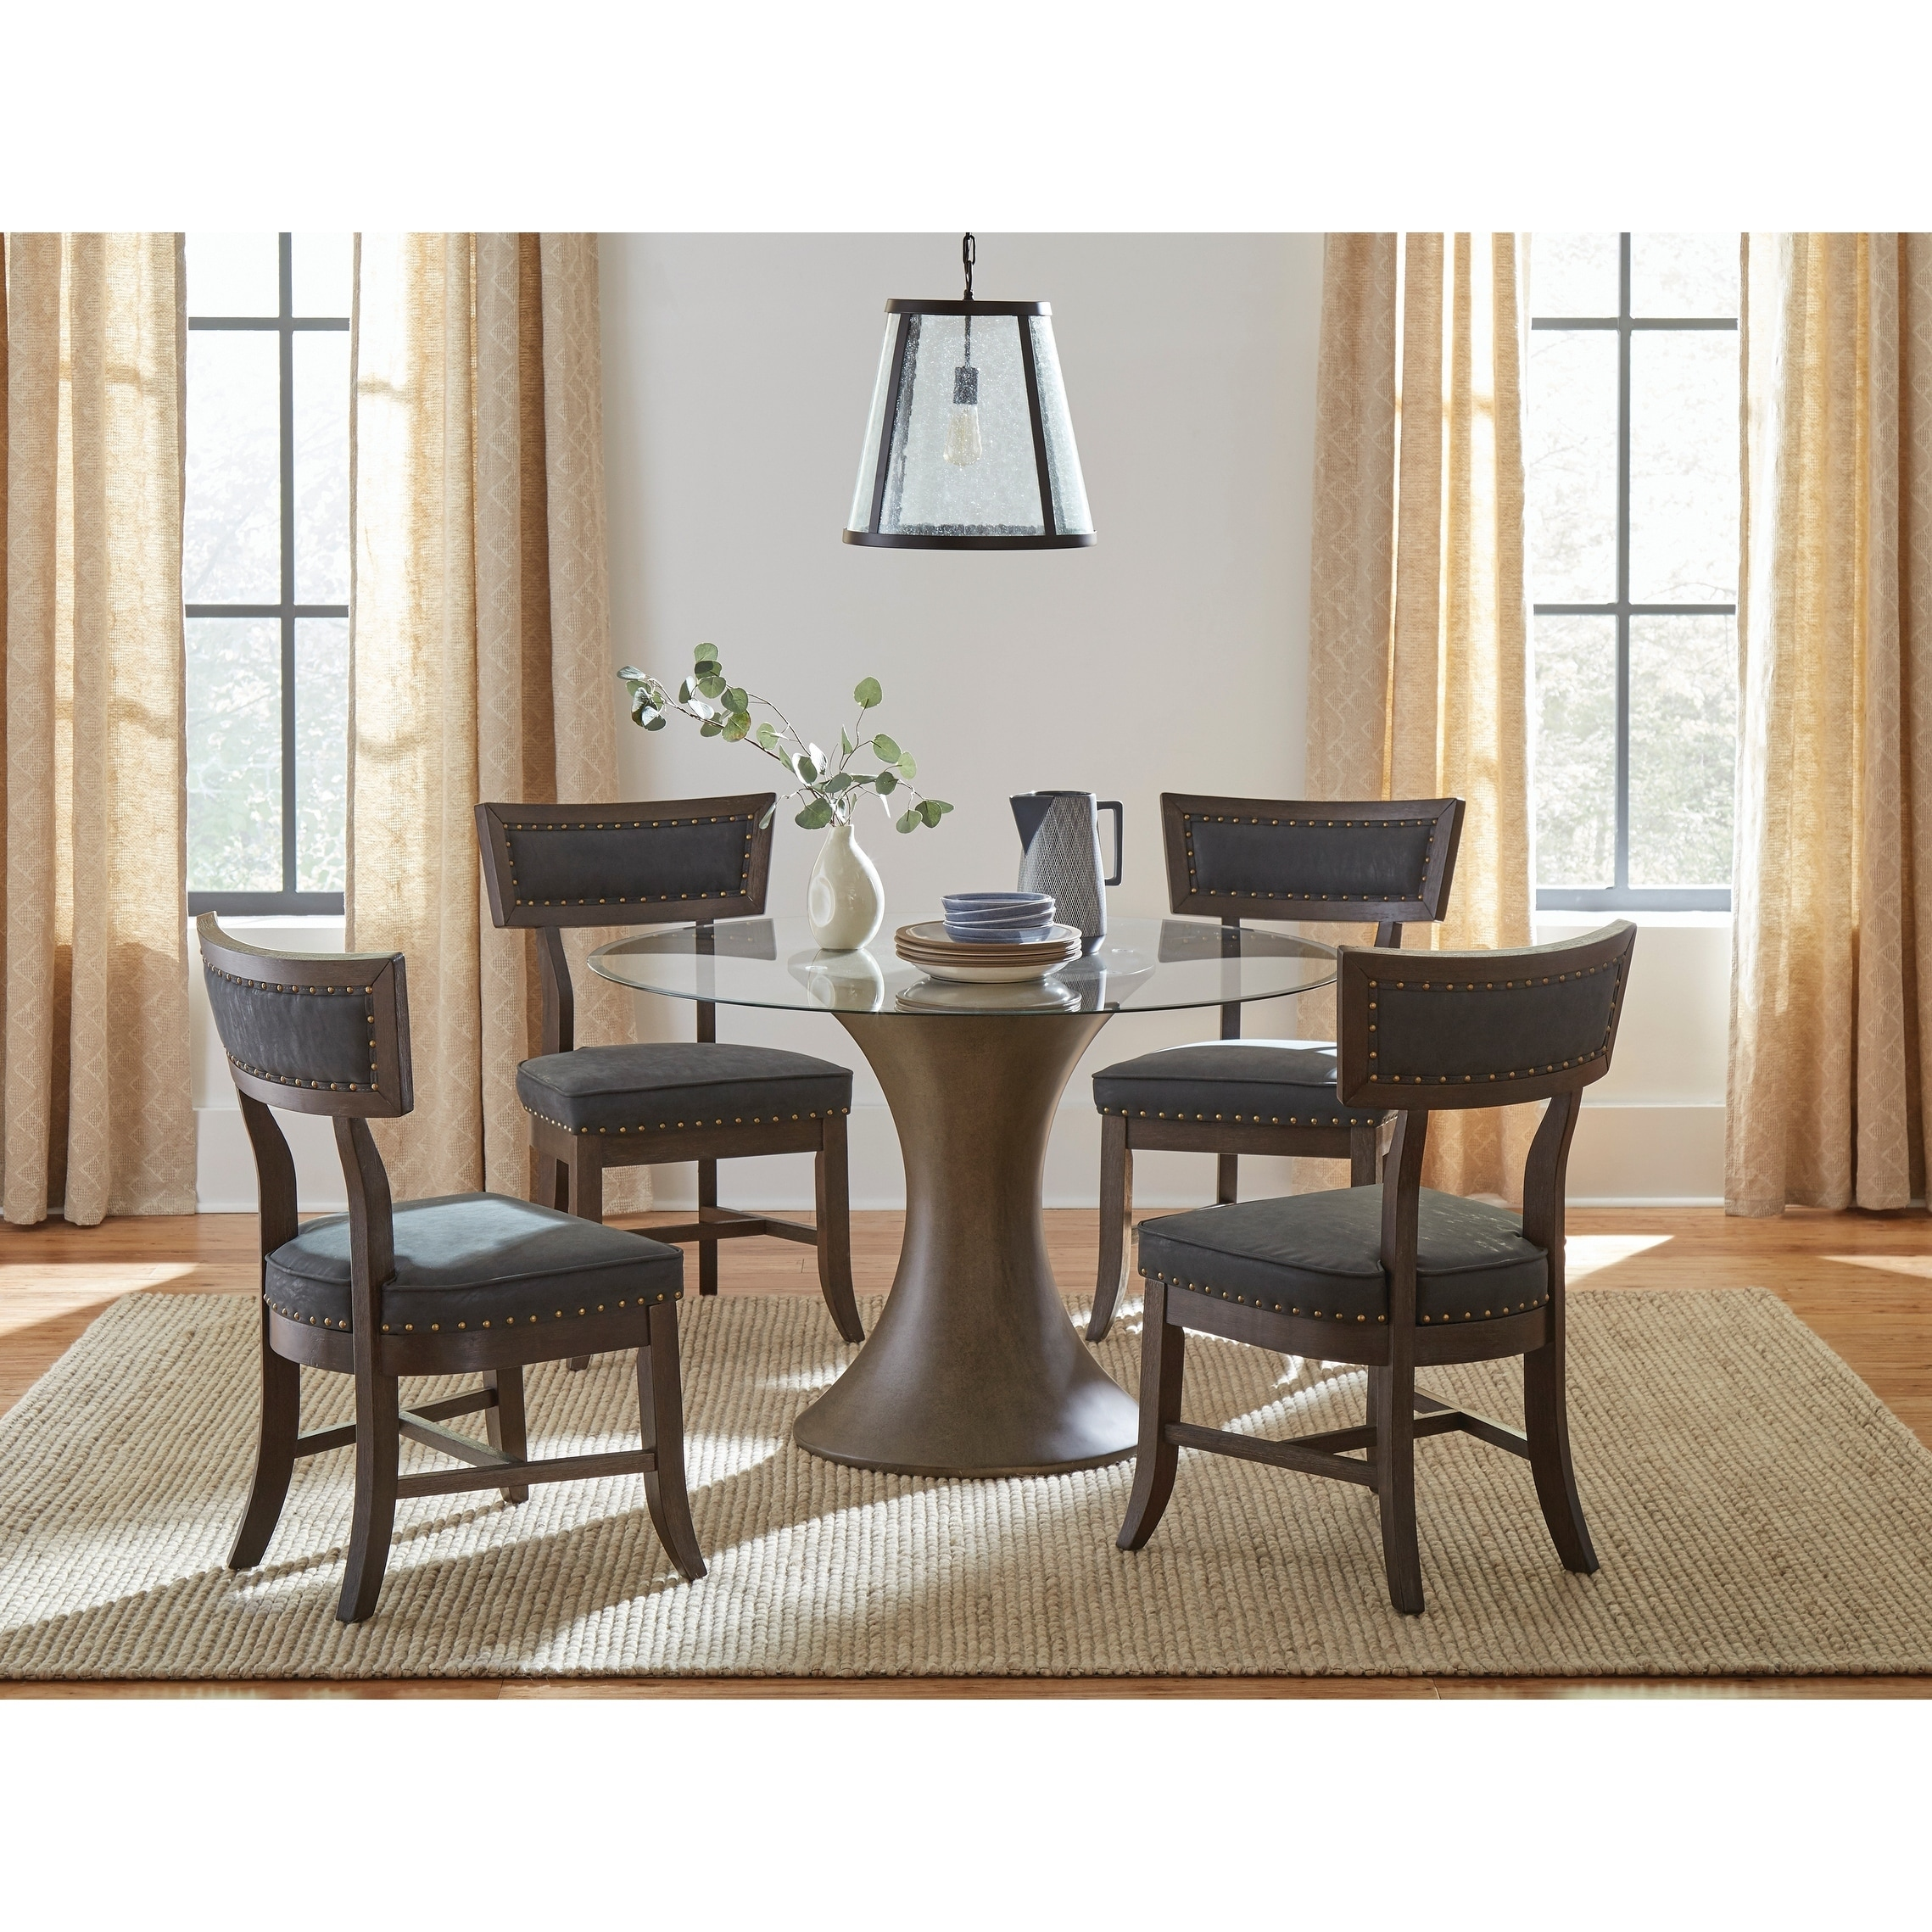 Cullman Bronze Hourglass Dining Table Base Overstock 29374861